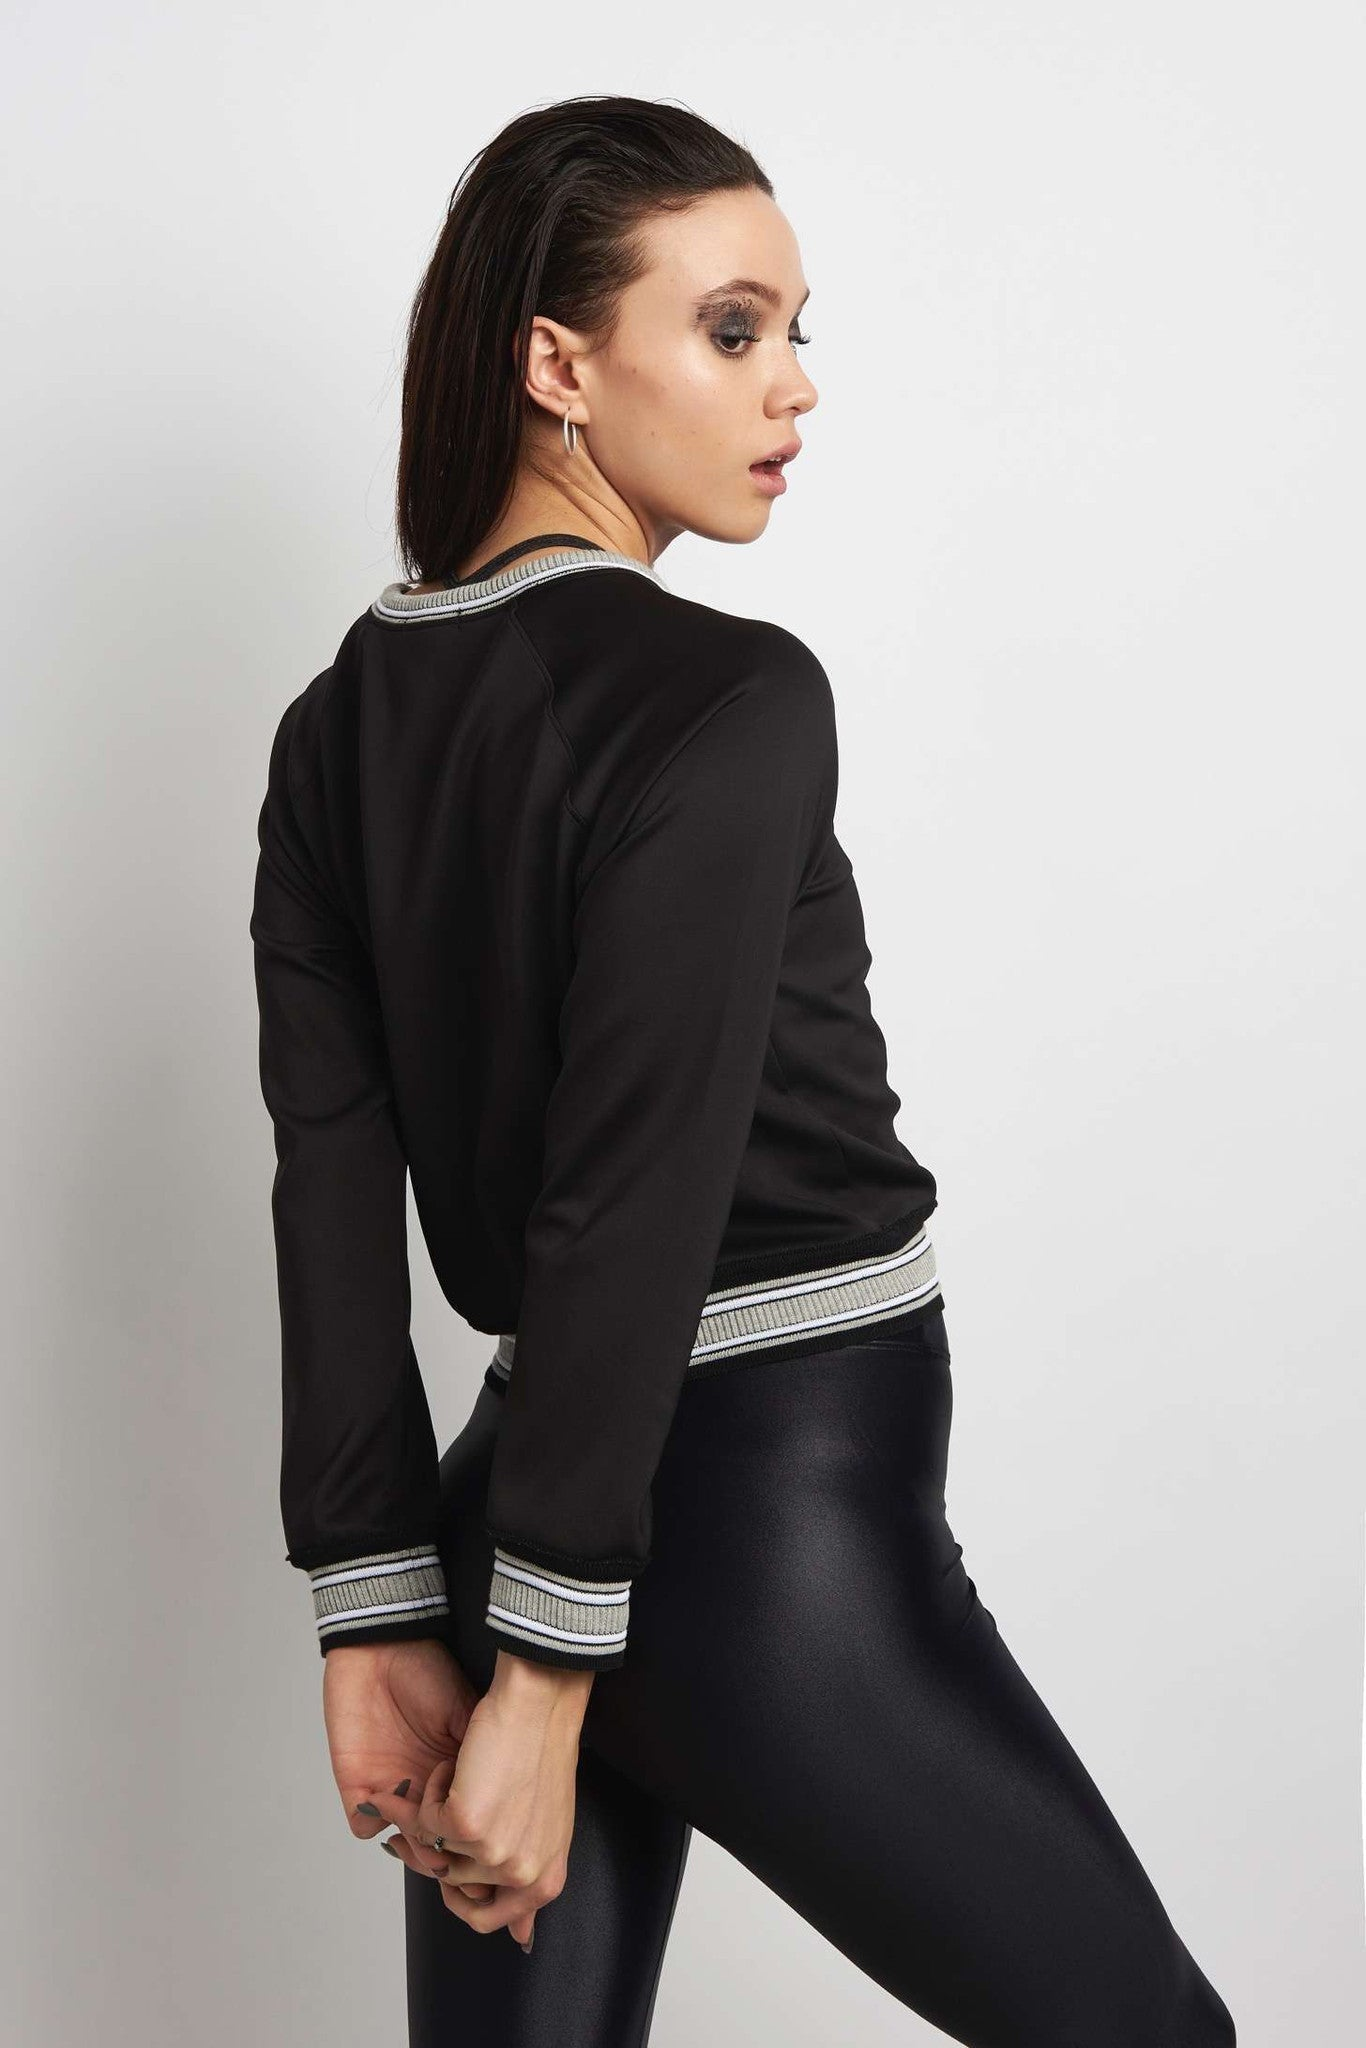 Koral Club Long Sleeve Sweatshirt - Black image 2 - The Sports Edit